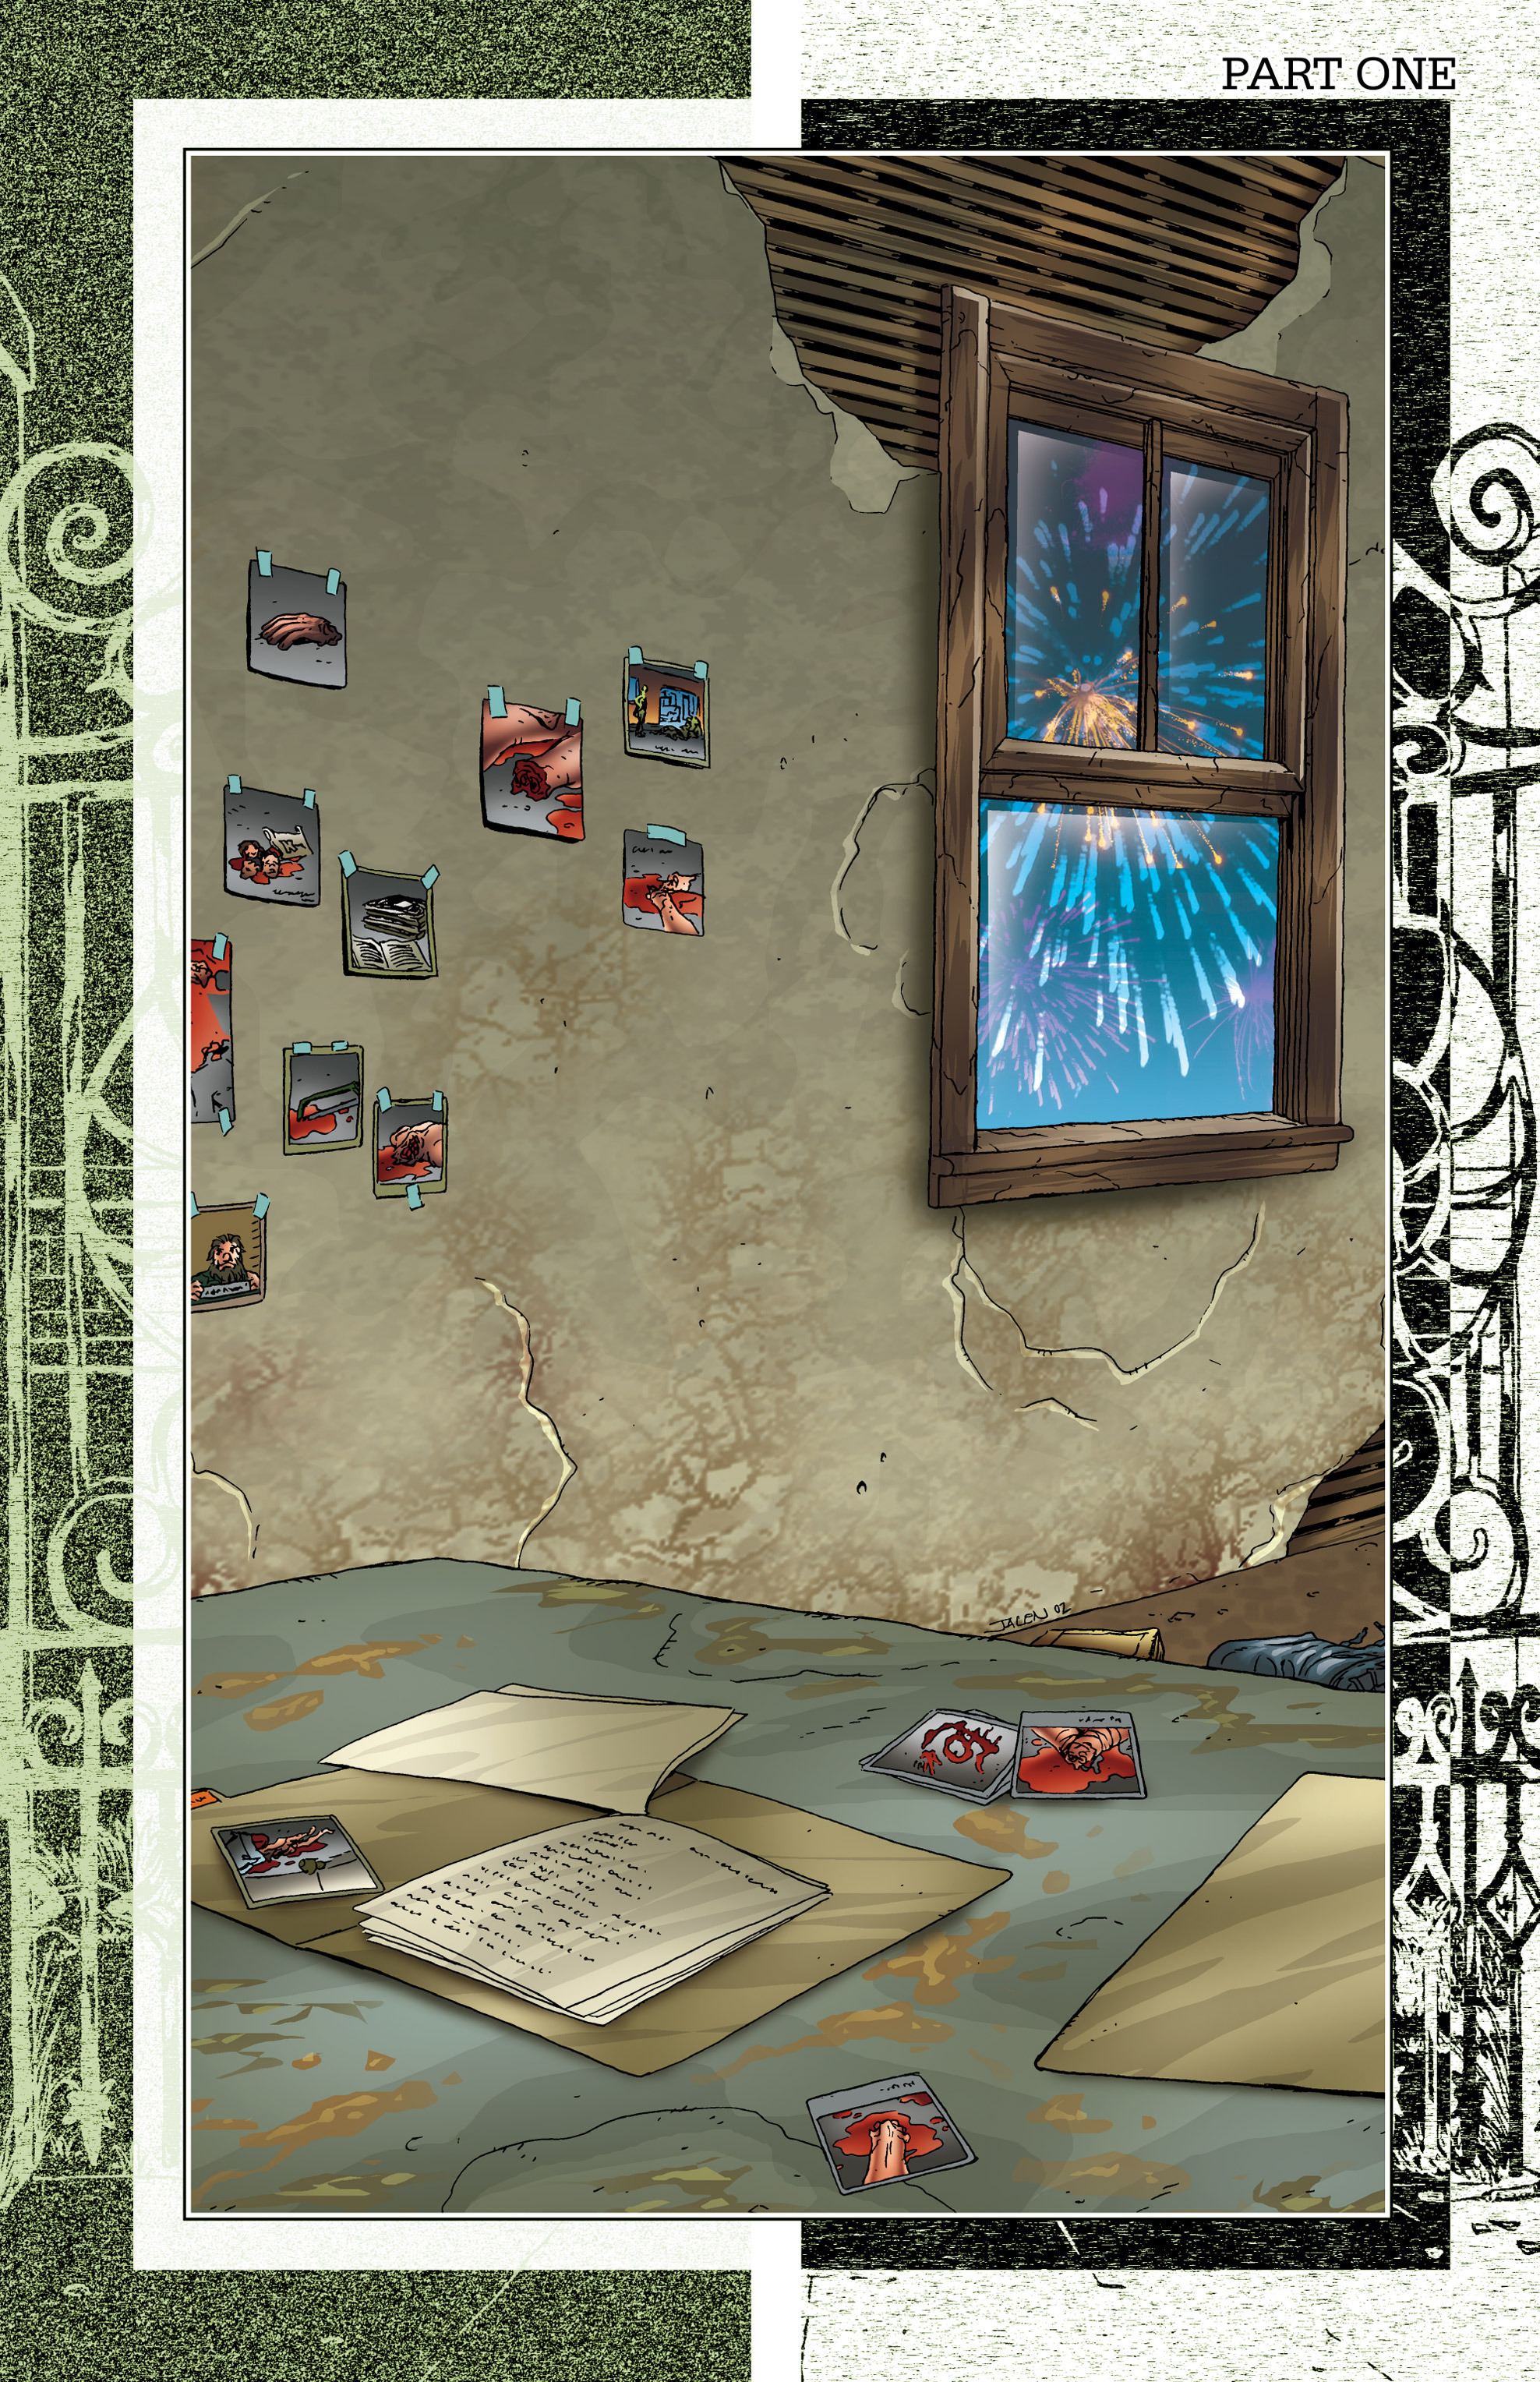 Read online Alan Moore's The Courtyard comic -  Issue # TPB - 4